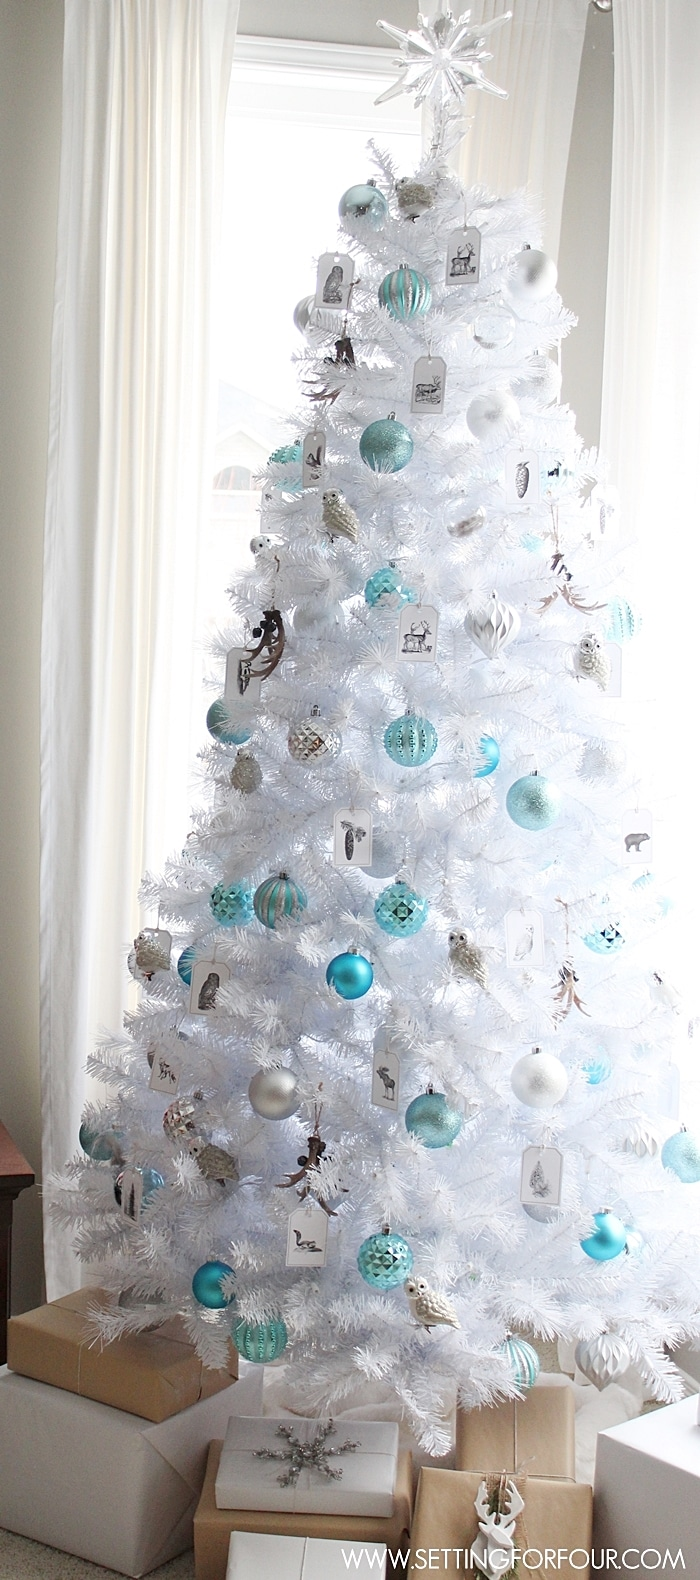 See how I decorated my Winter Woodland Glam White Christmas Tree for the holidays! DIY decor with woodland animals, metallics and shine! www.settingforfour.com